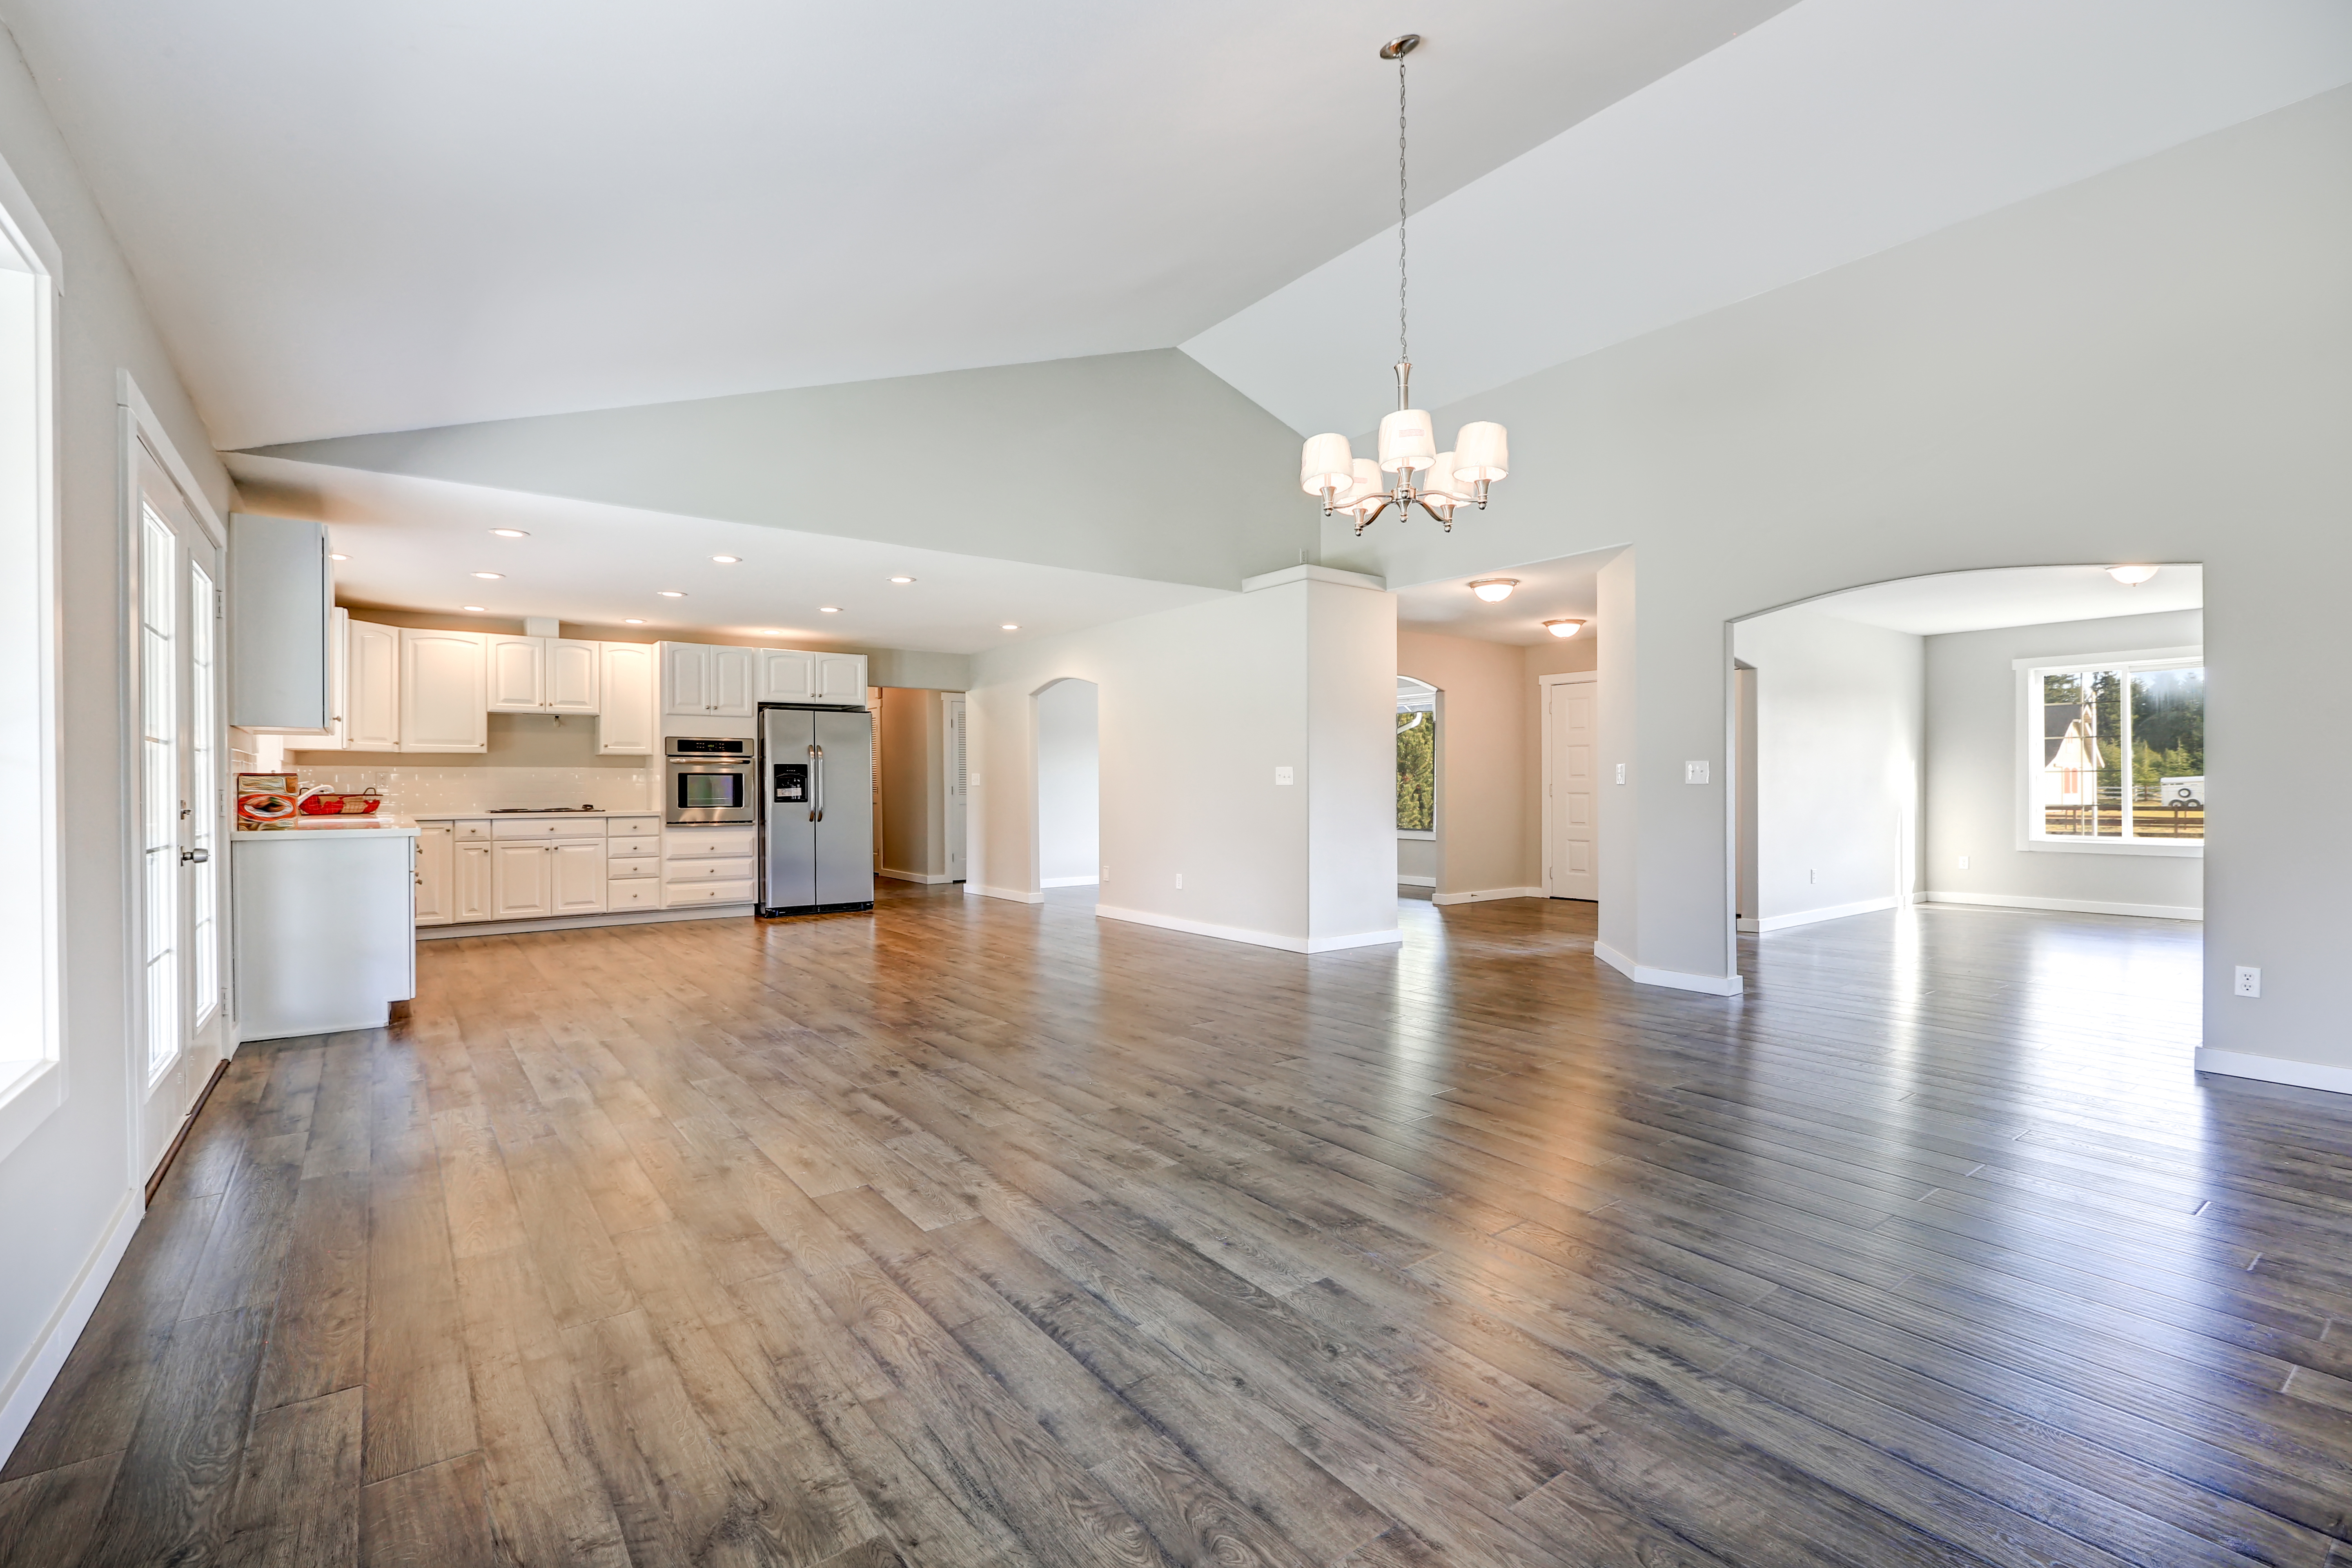 Everything You Need to Know About Staging an Empty House